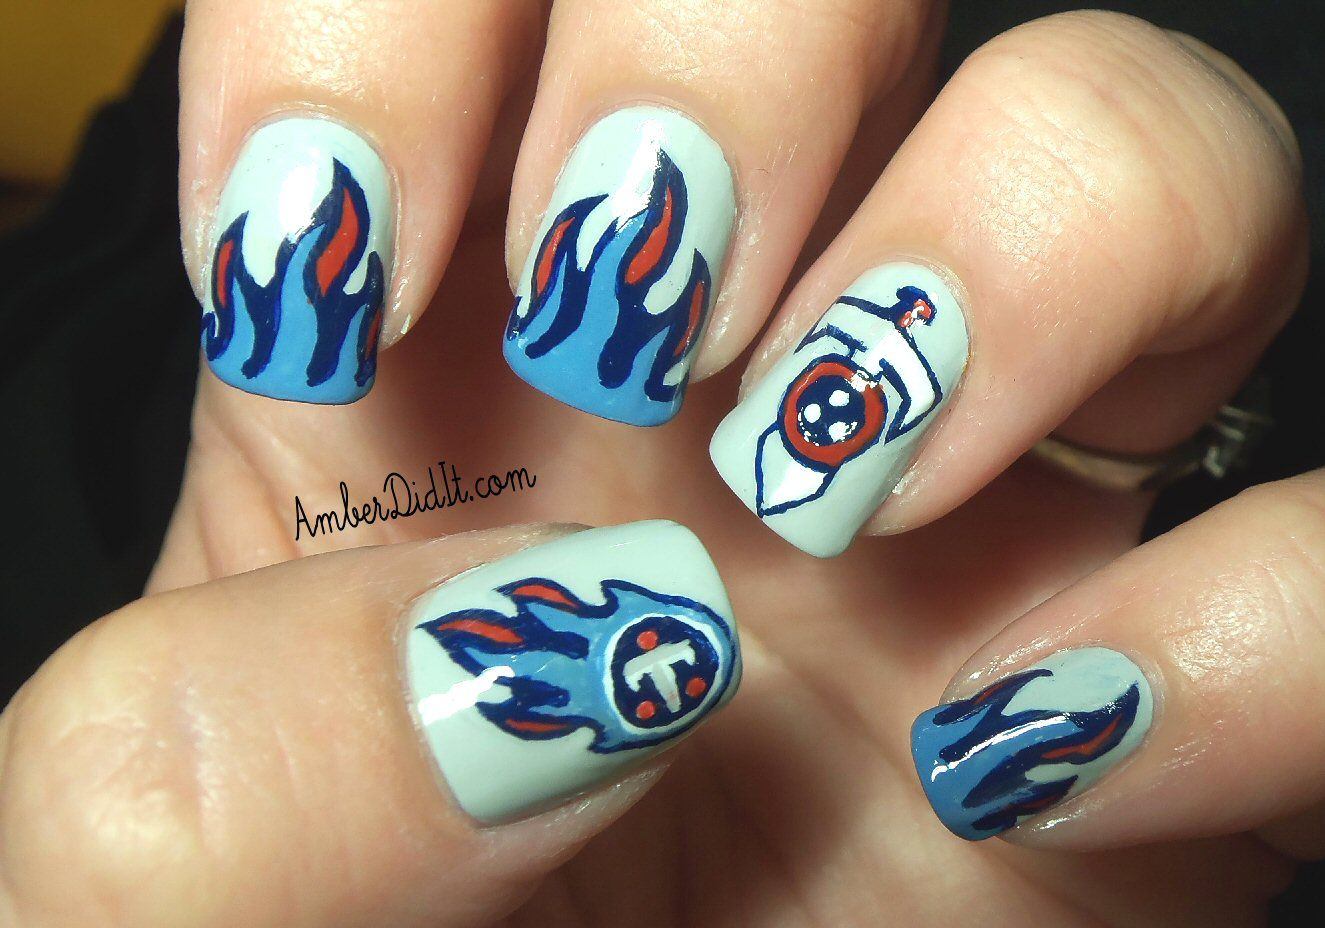 Tennessee Titans nail art #football | Nails by Amber | Pinterest ...